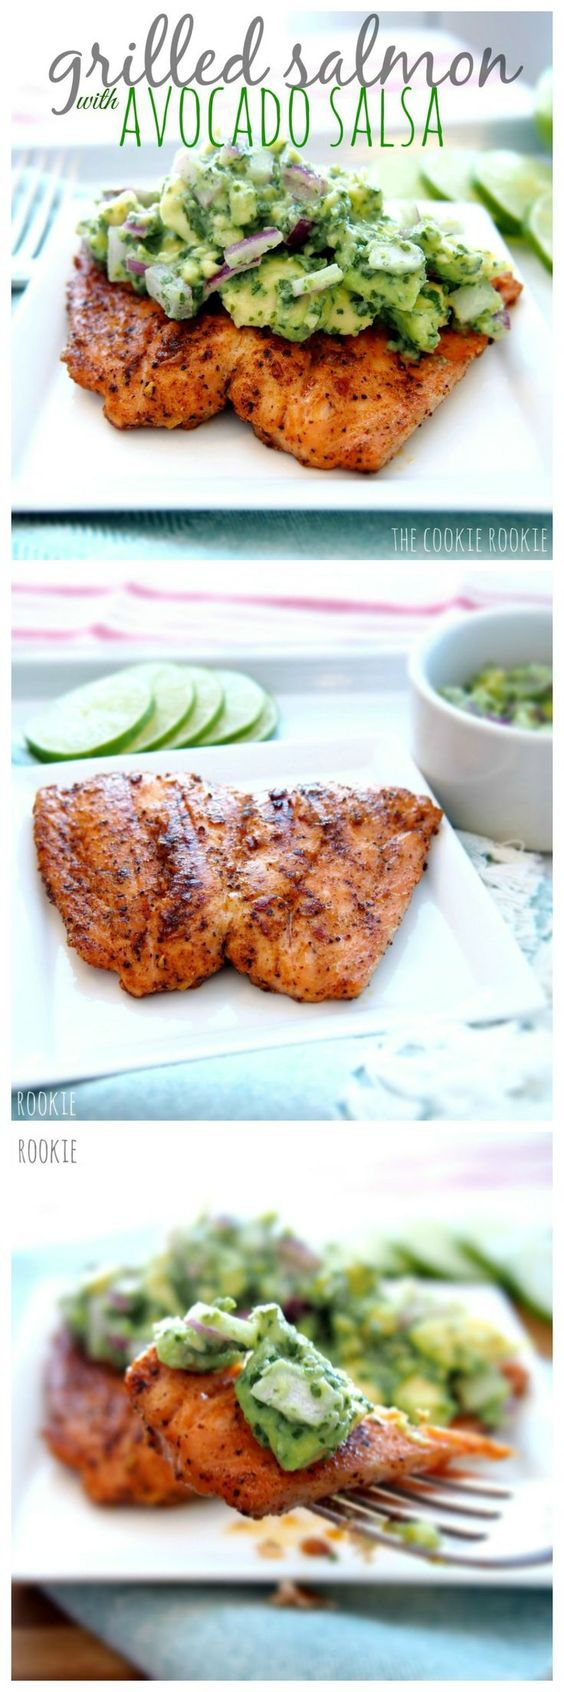 Grilled Salmon with Avocado Salsa. Delicious, healthy and easy. Perfect for the warmer weather! {The Cookie Rookie}: